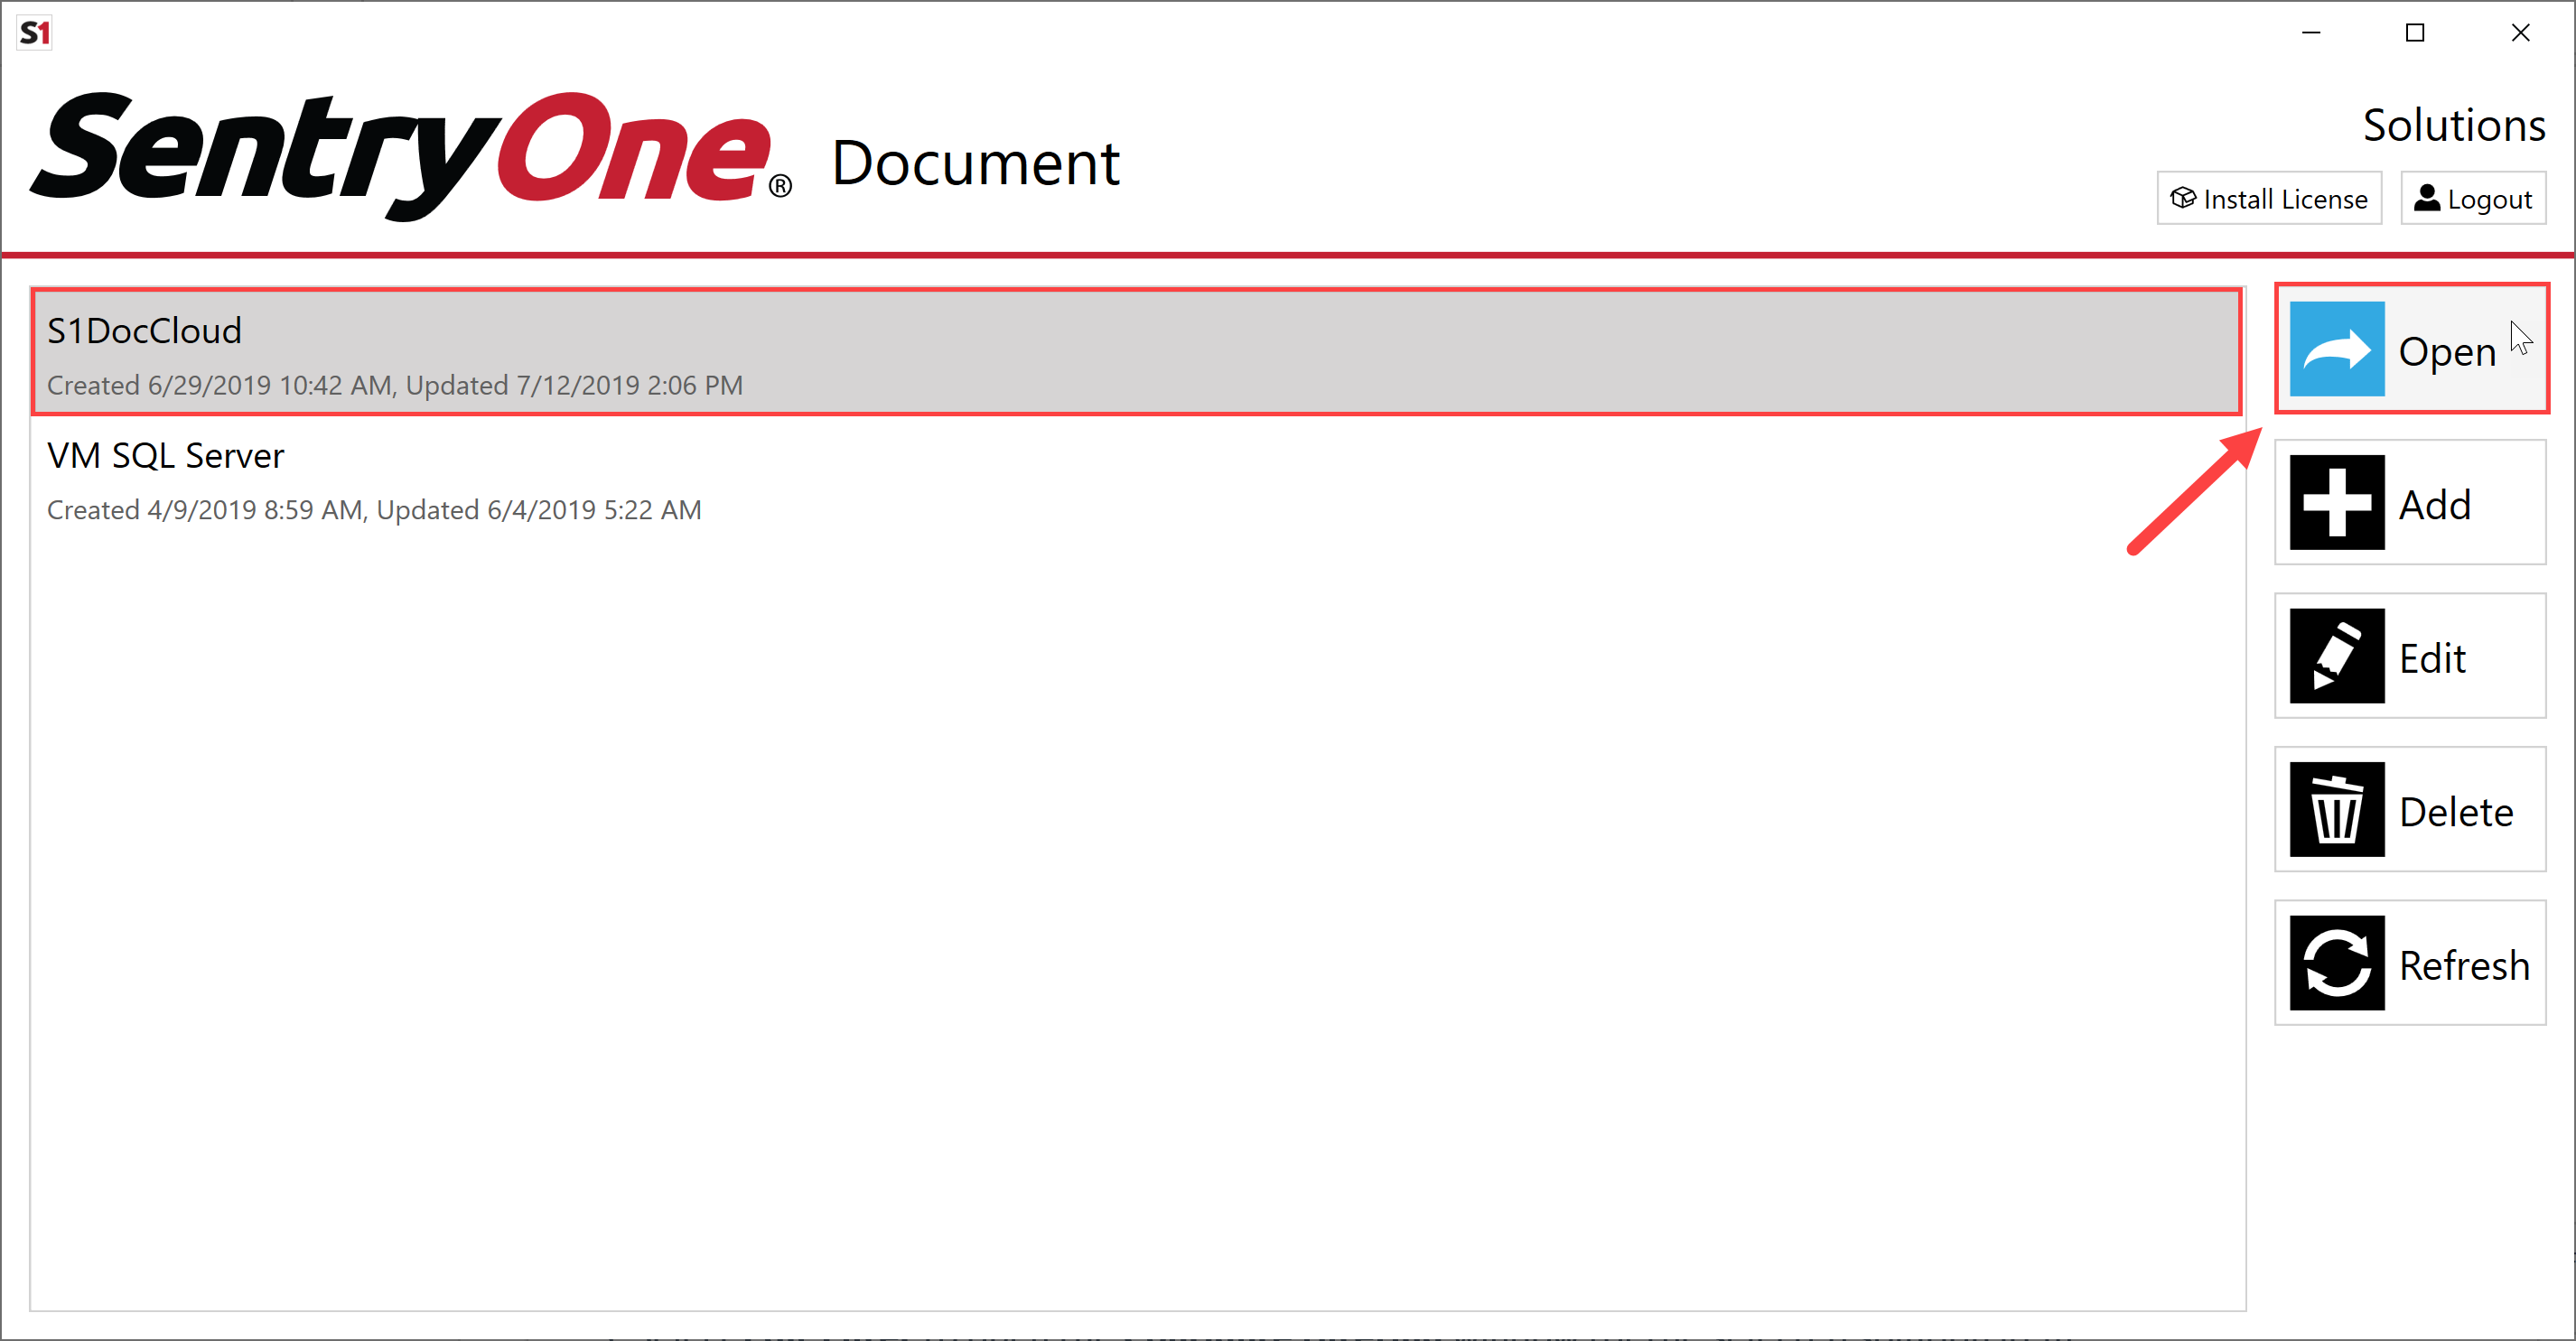 SentryOne Document Open Solution